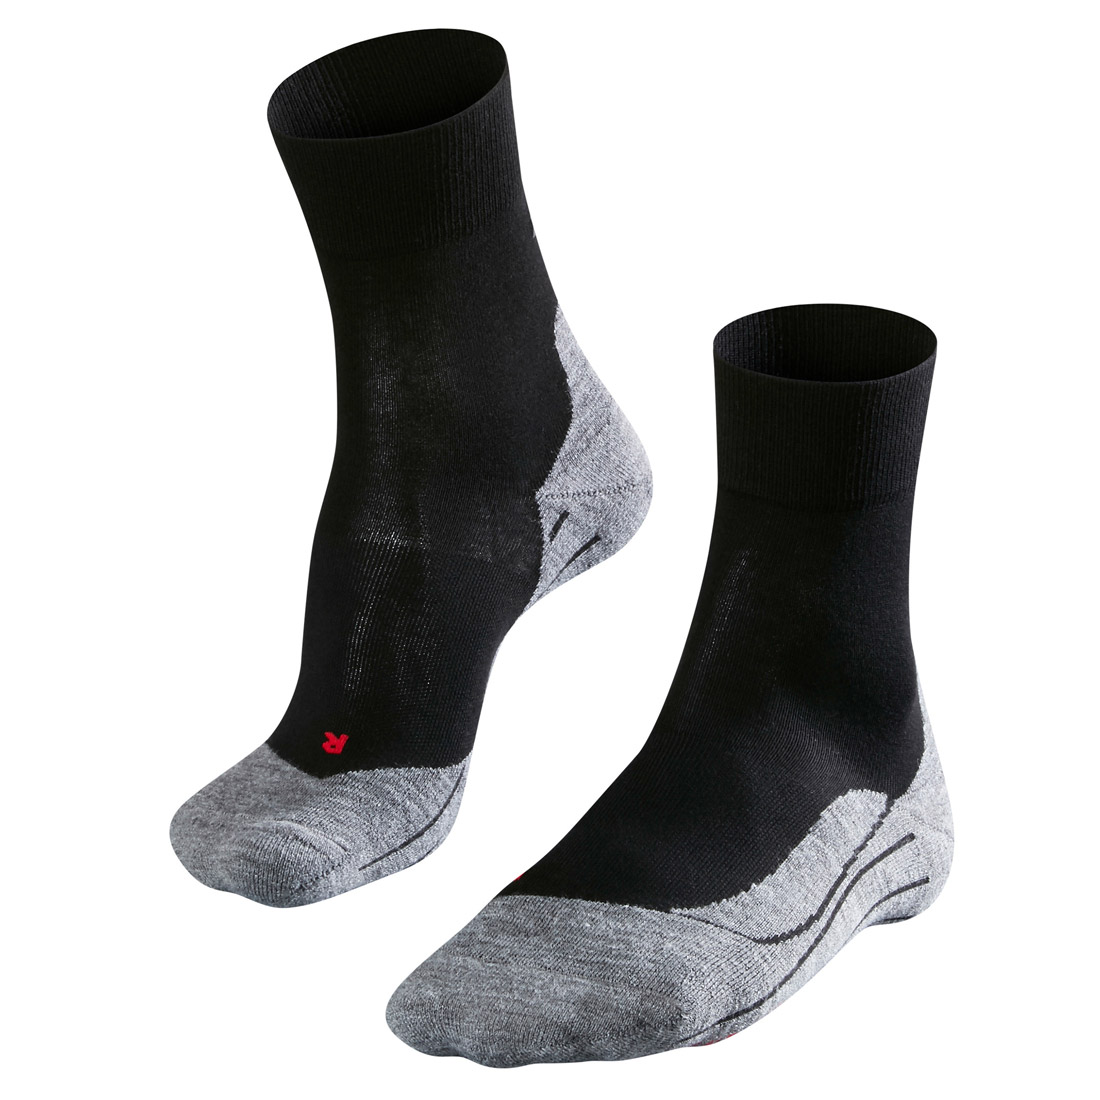 3 Paar Falke Running RU4 3P Fitness Socken 16704 Women Sportsocken 37-38, Black-Mix 3010 von Falke